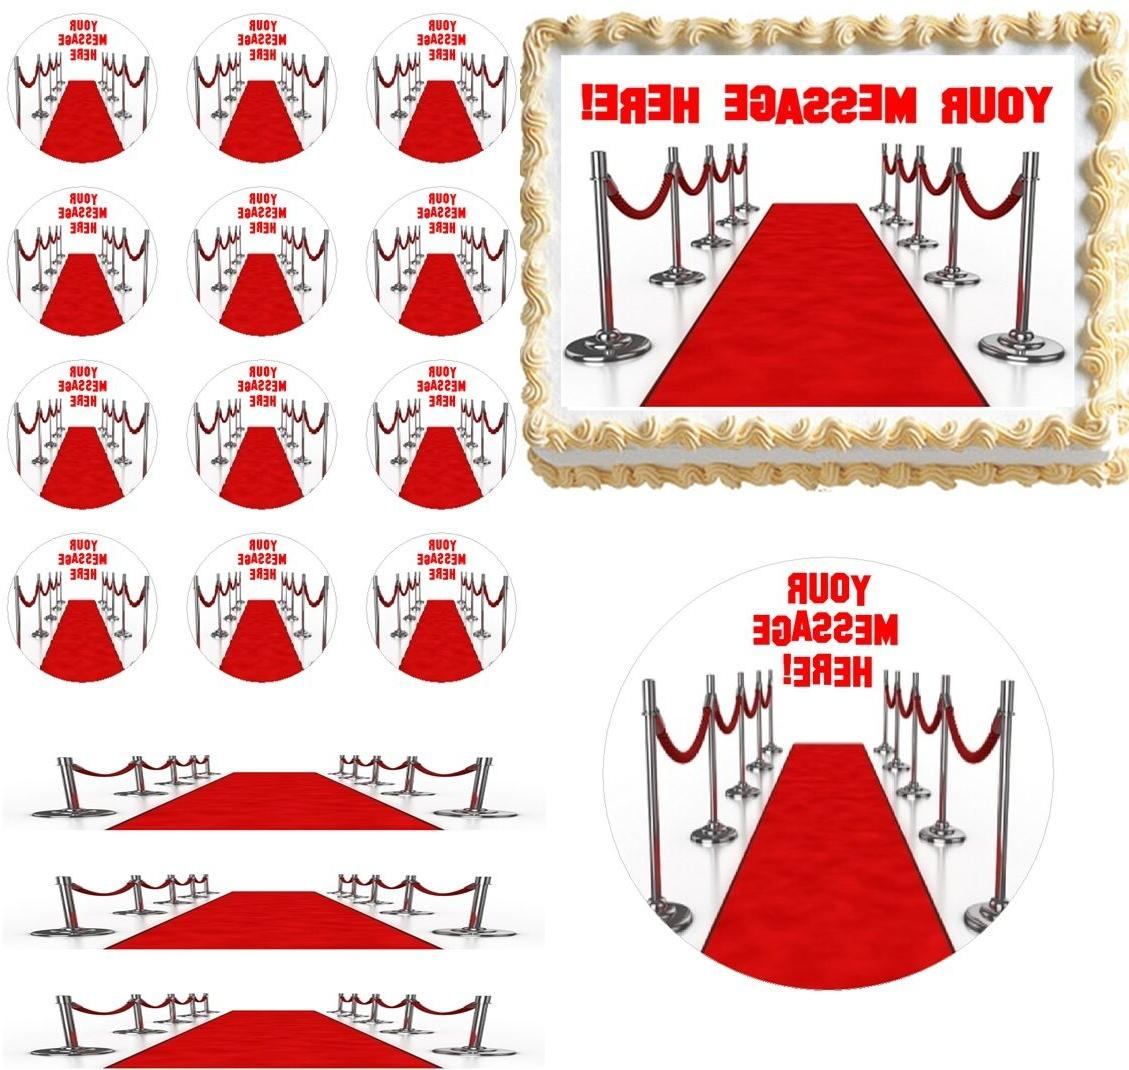 Hollywood Red Carpet Glam Edible Cake Topper Image Cupcakes